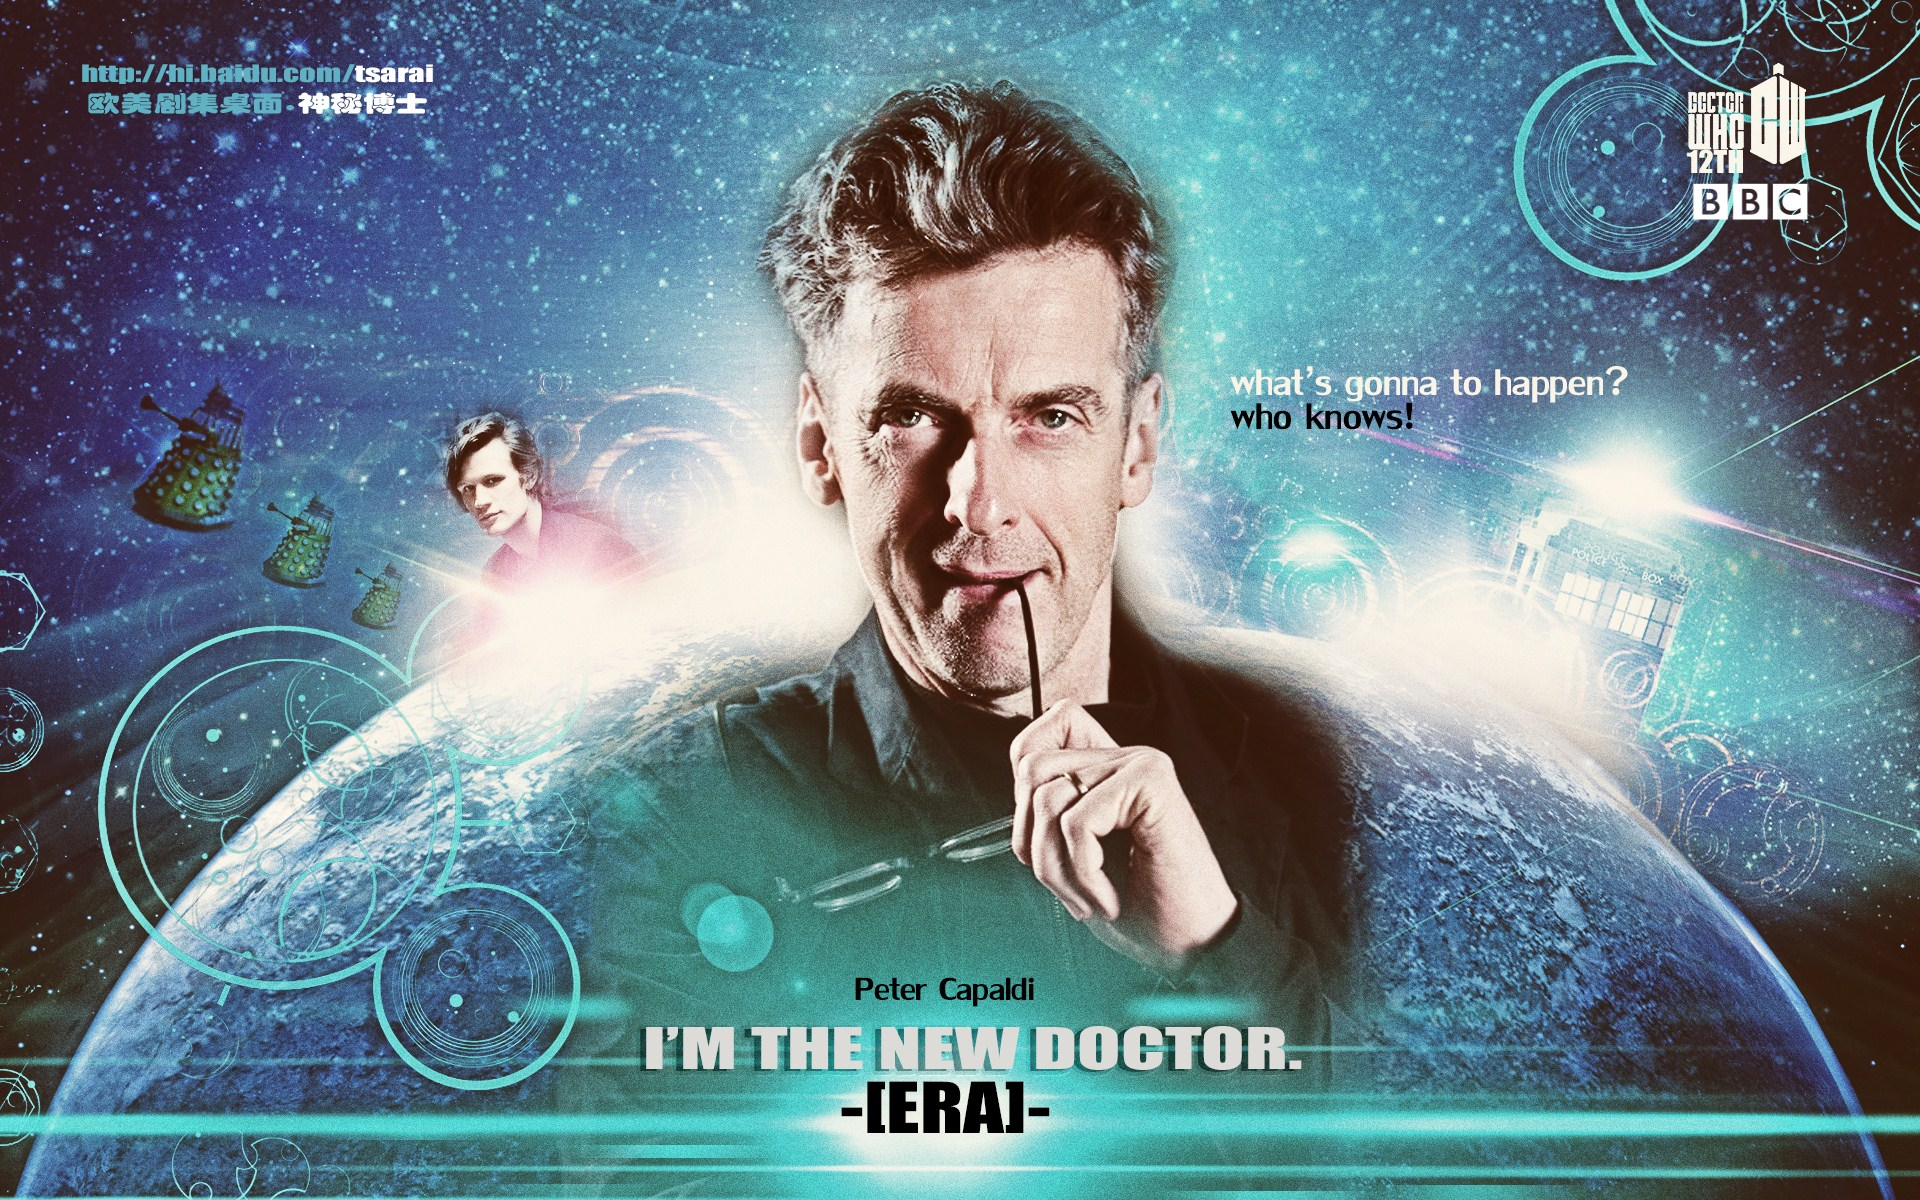 HELLO, 12TH DOCTOR